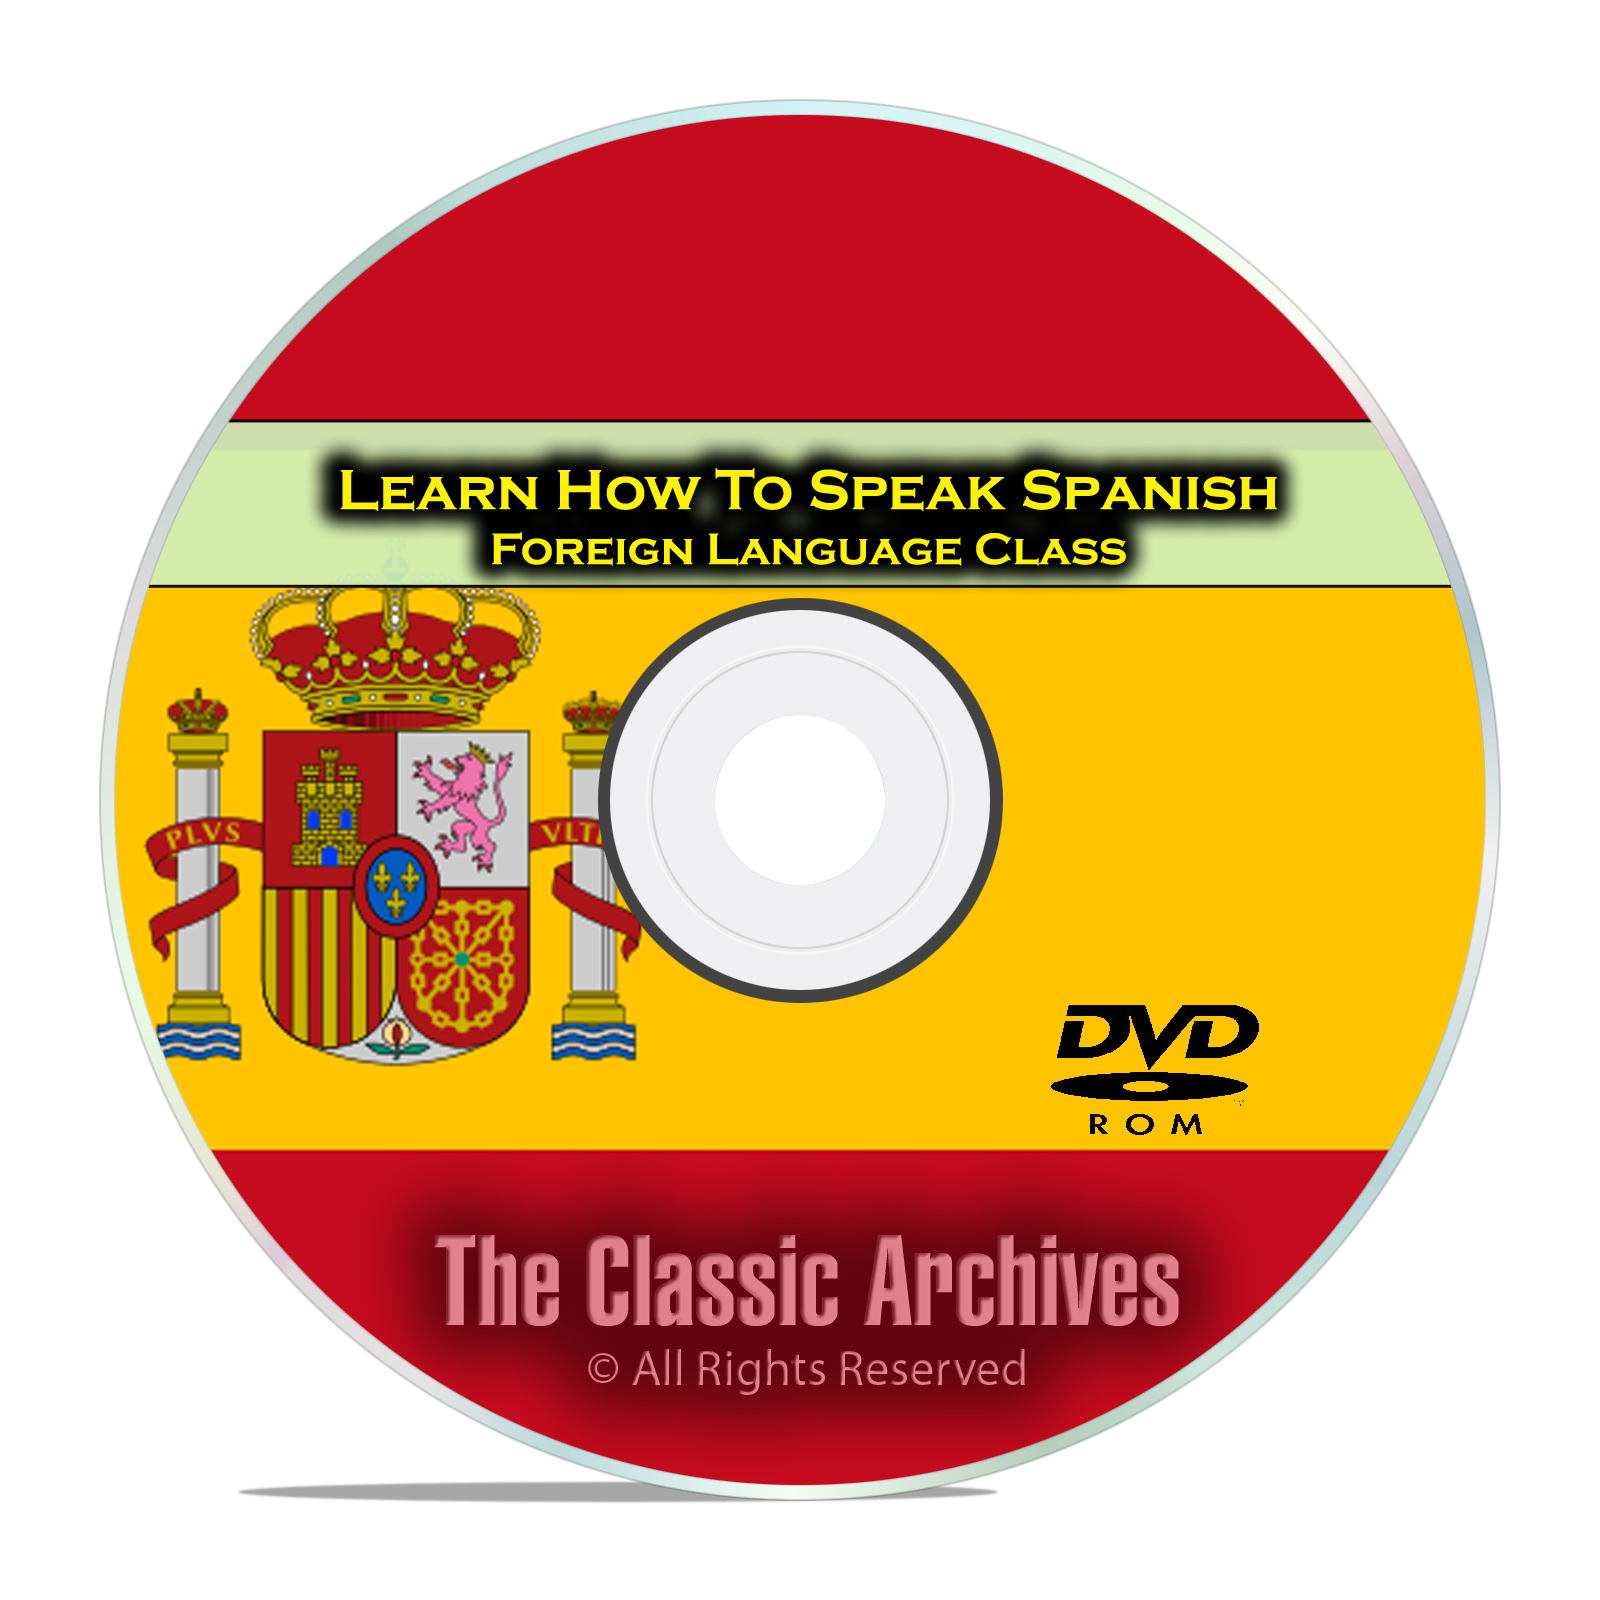 Learn How To Speak Spanish, Fast Foreign Language Training Course, DVD